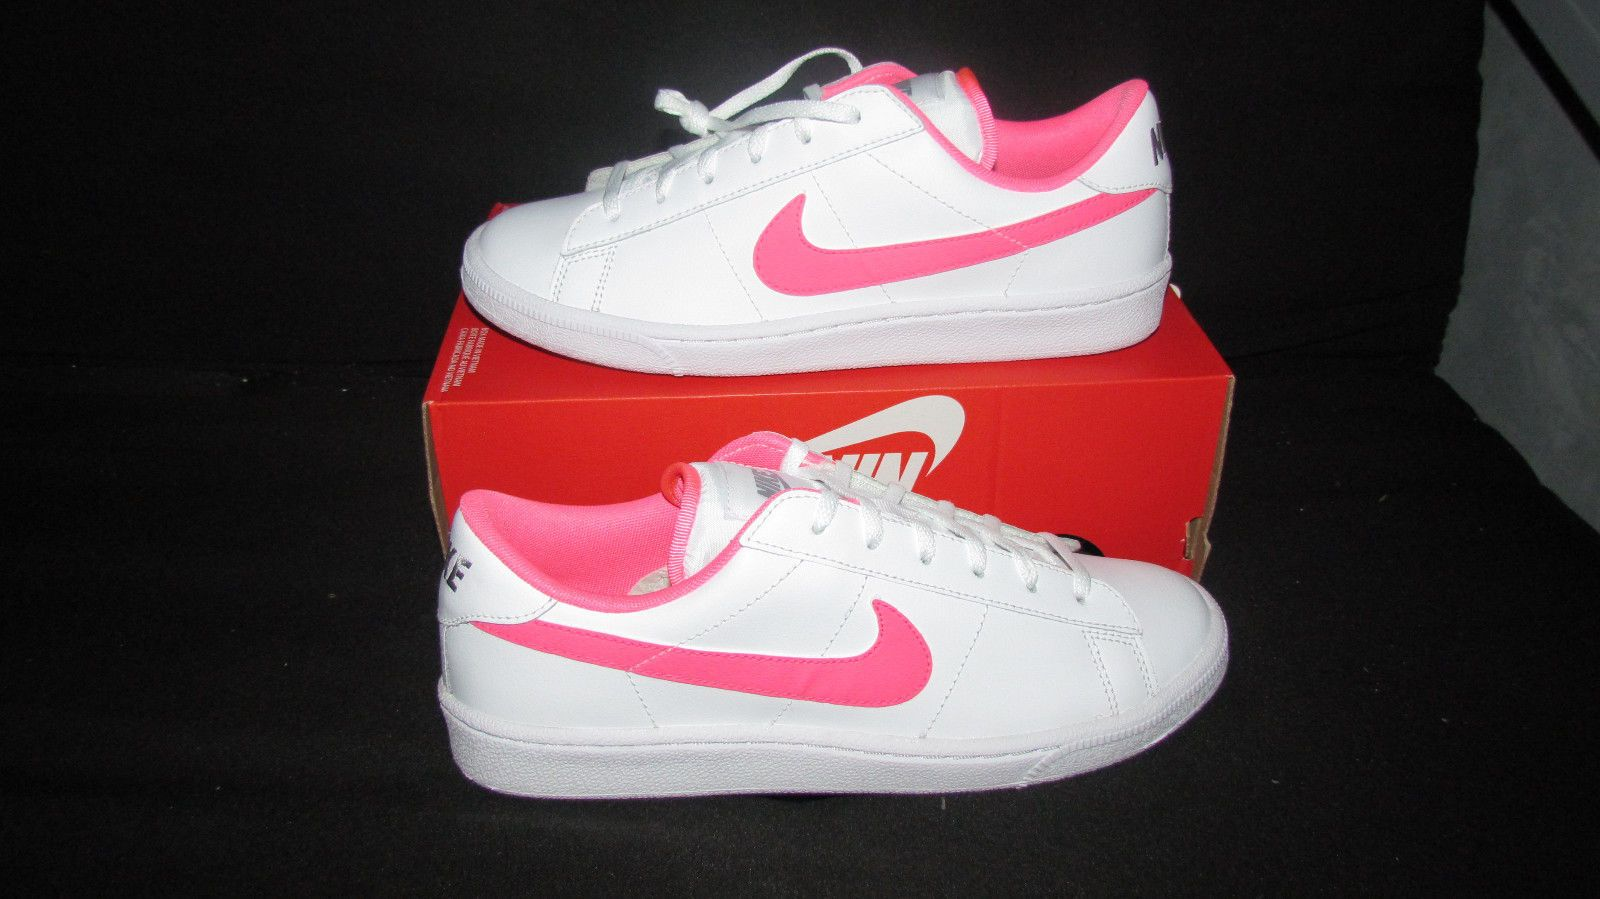 New Nike Tennis Classic girls fashion shoes size 7 youth color white/pink